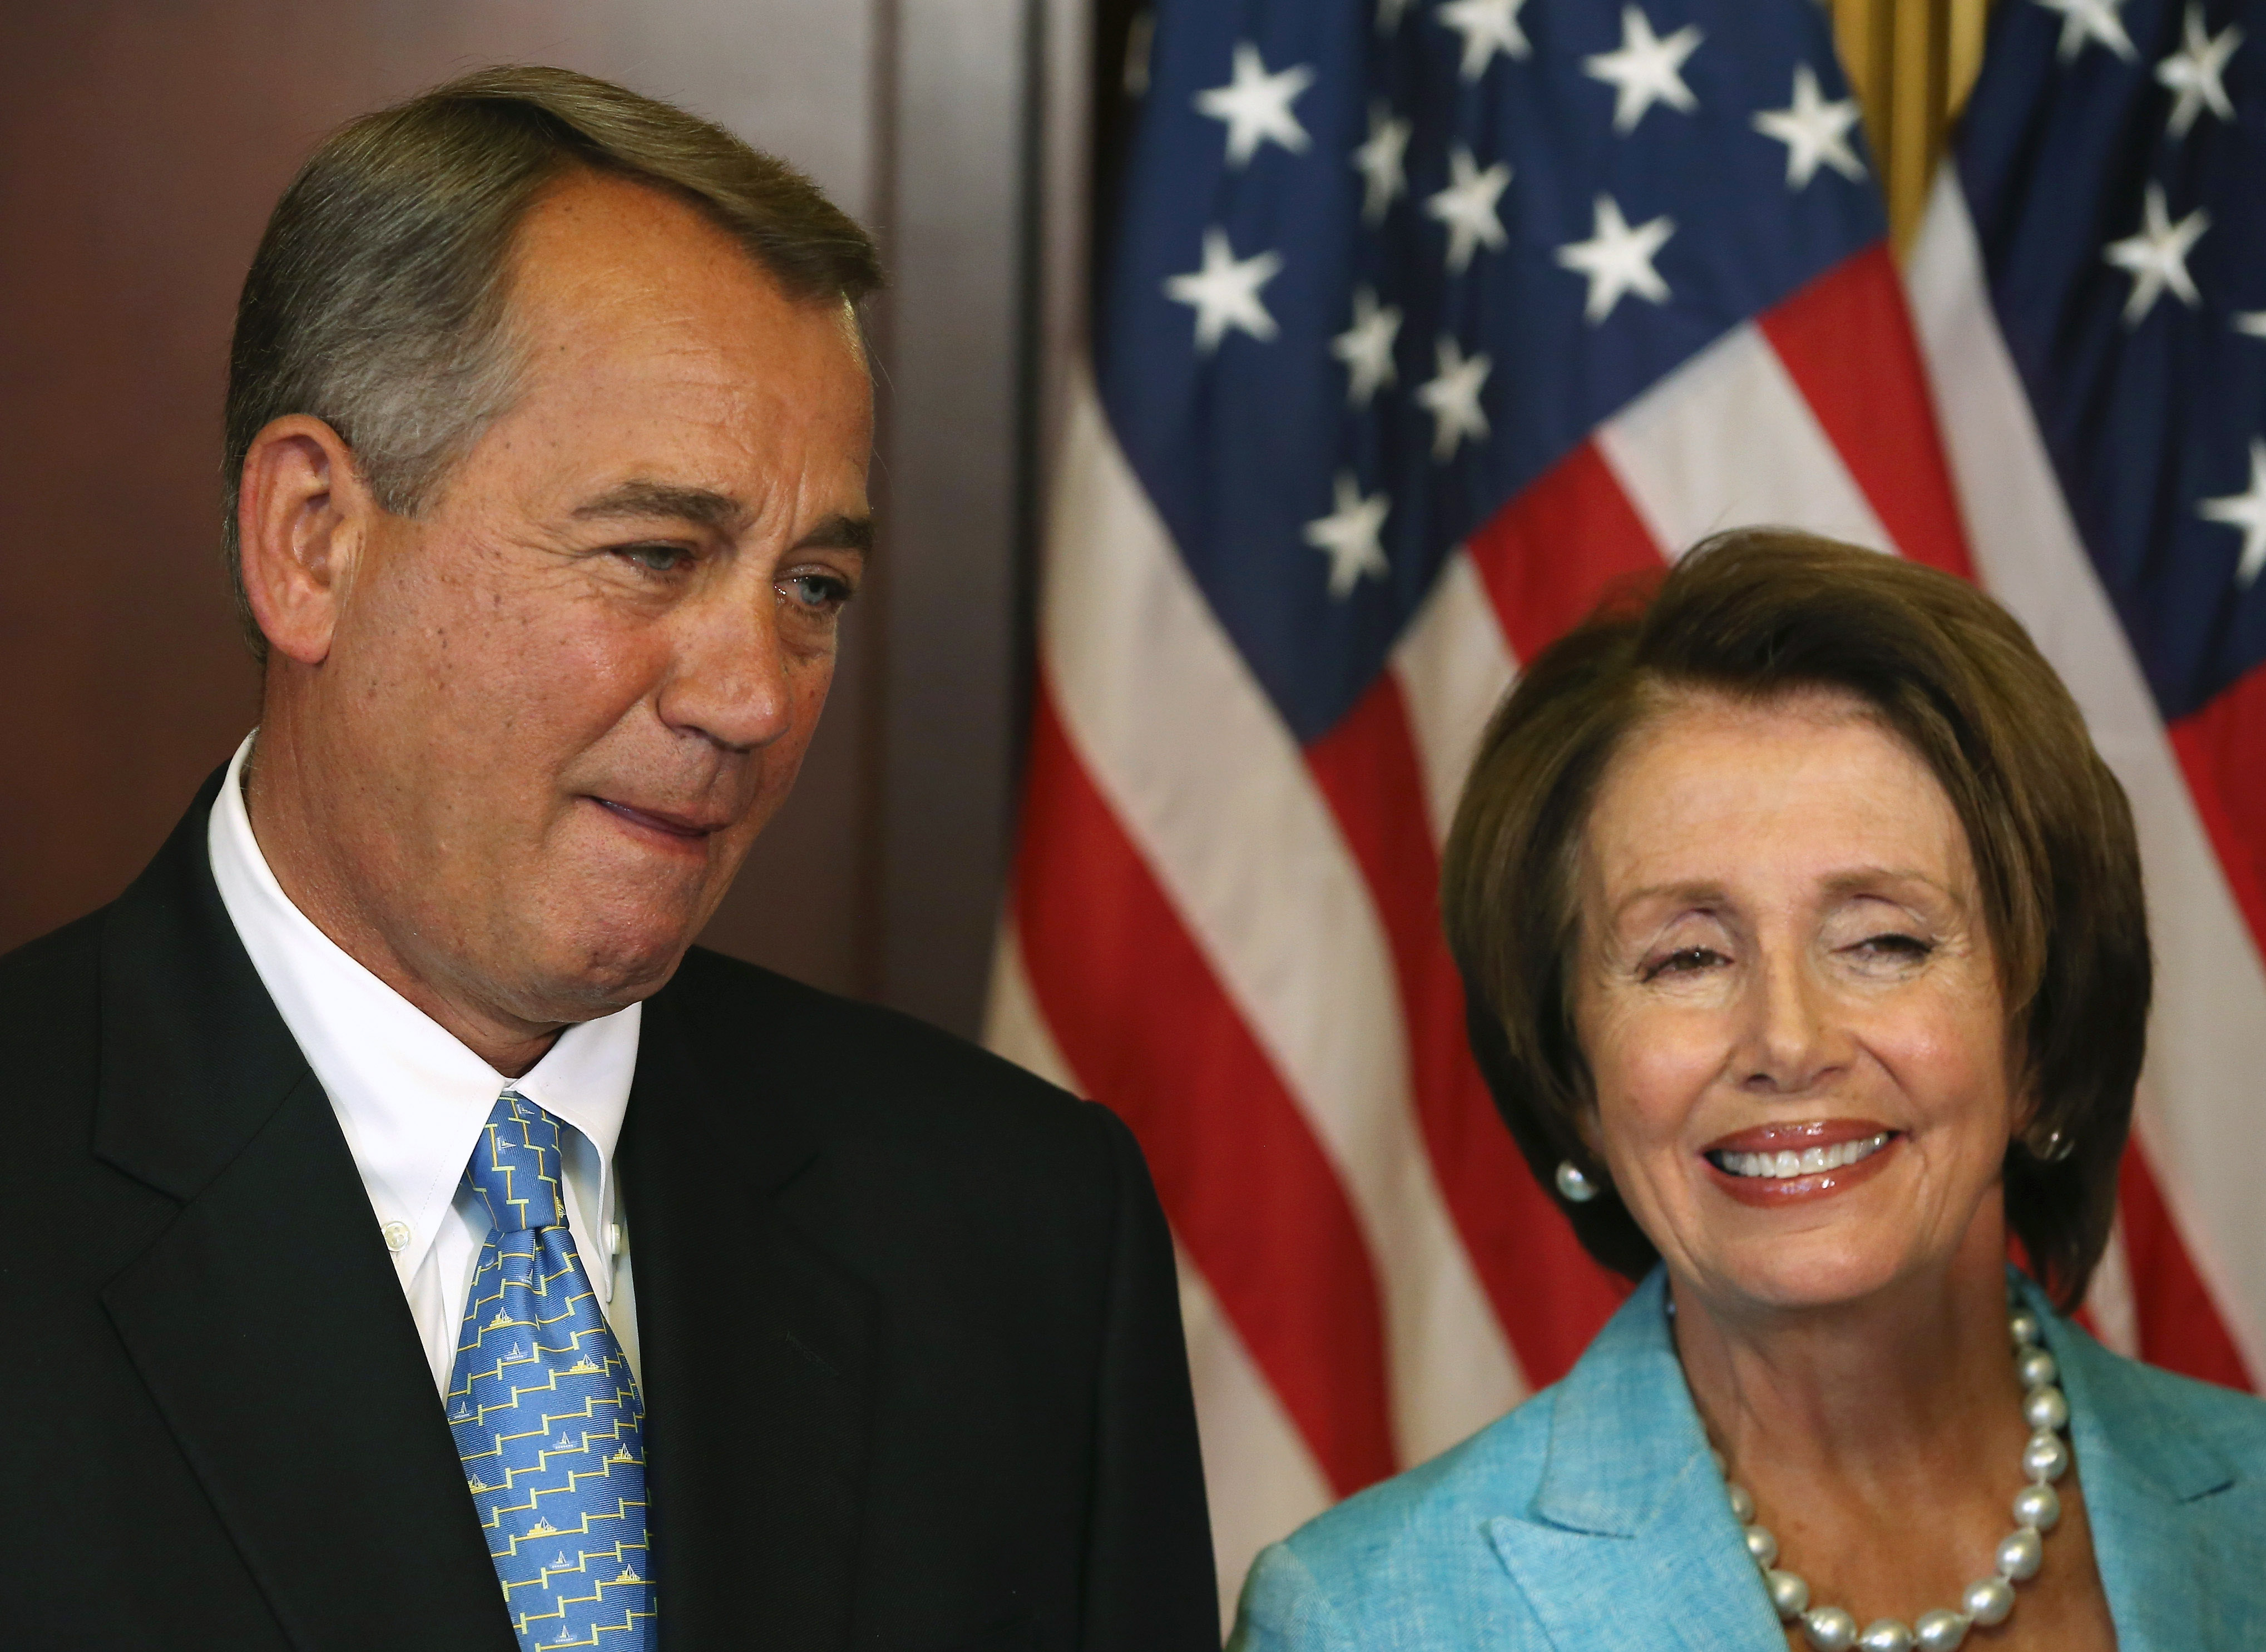 House Minority Leader Nancy Pelosi and House Speaker John Boehner await to sign bipartisan legislation Workforce Innovation and Opportunity Act at the U.S. Capitol, July 11, 2014 in Washington, DC.